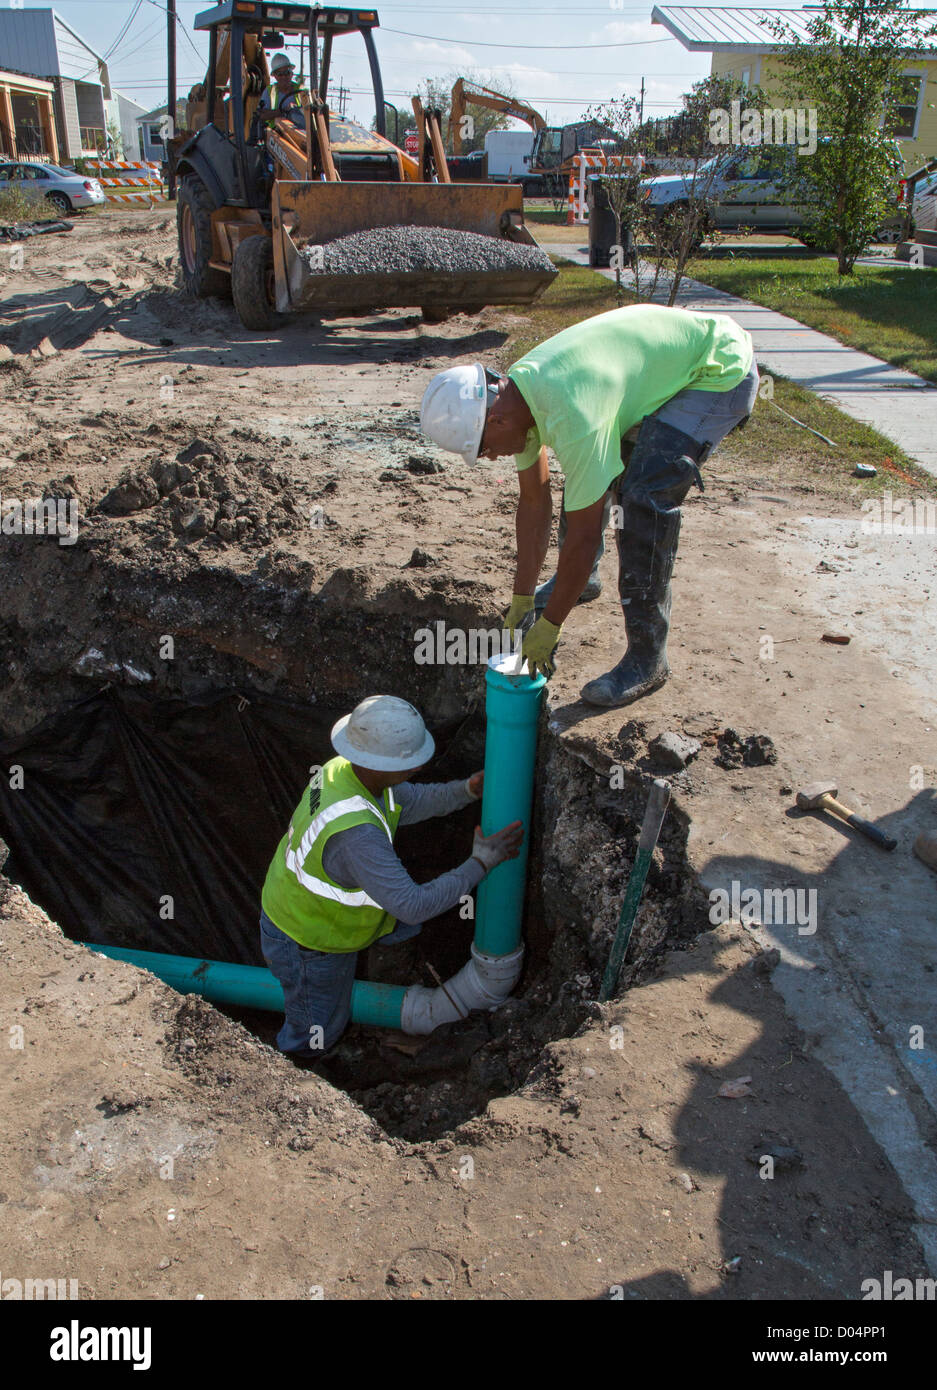 Seven years after Hurricane Katrina, workers hook up a sewer line to a new home in New Orleans' lower ninth - Stock Image